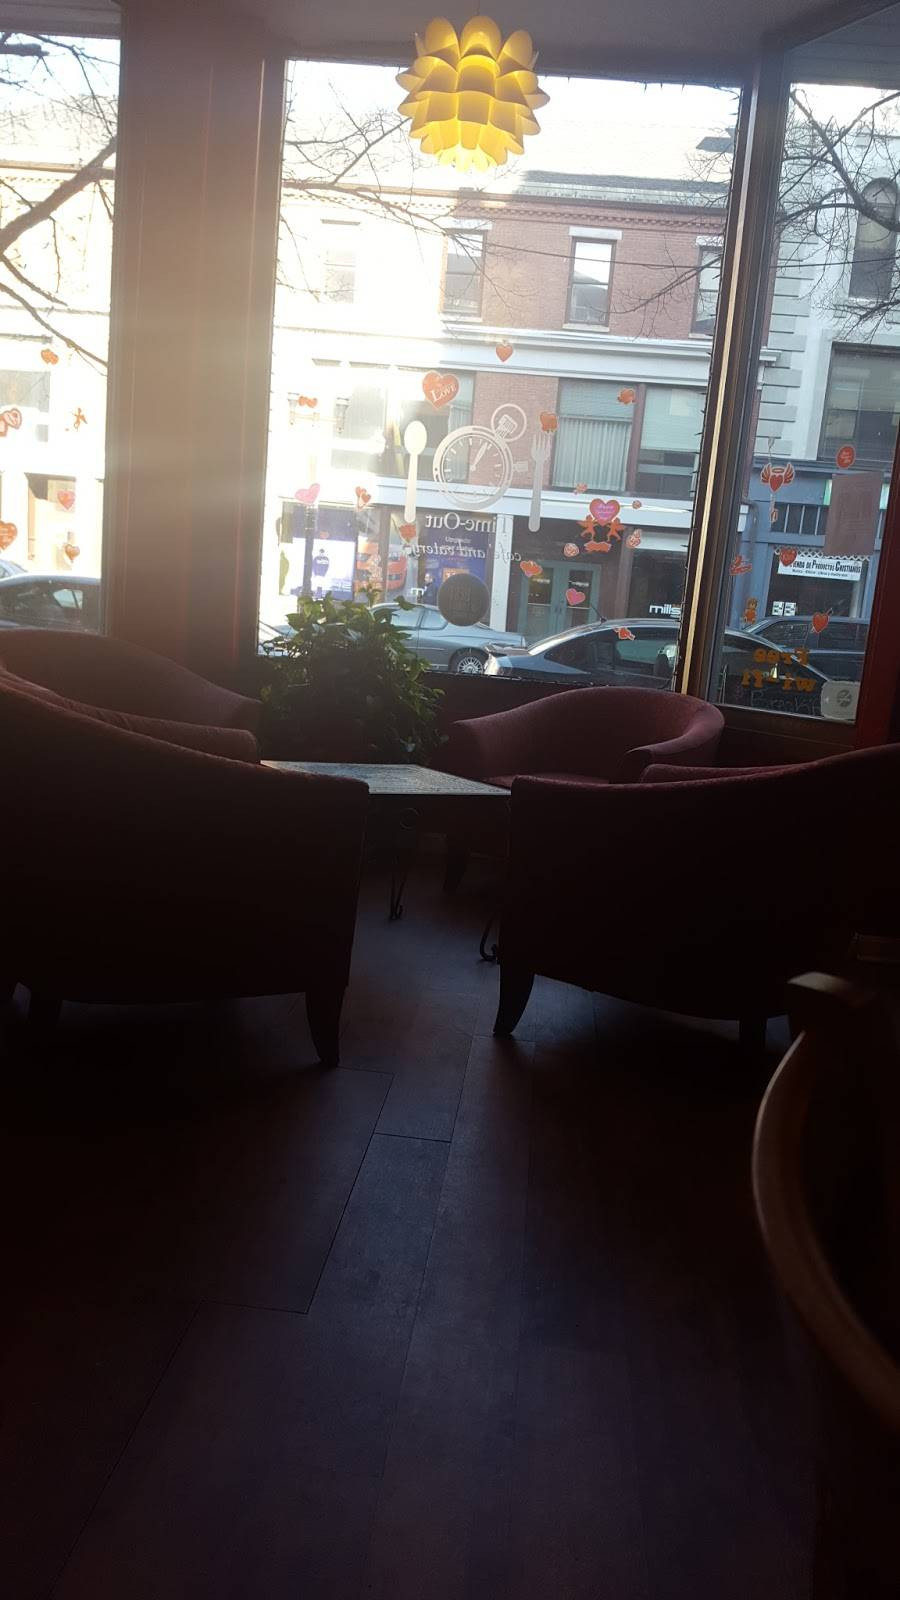 Time Out Cafe | cafe | 72 Merrimack St, Lowell, MA 01852, USA | 9787354514 OR +1 978-735-4514